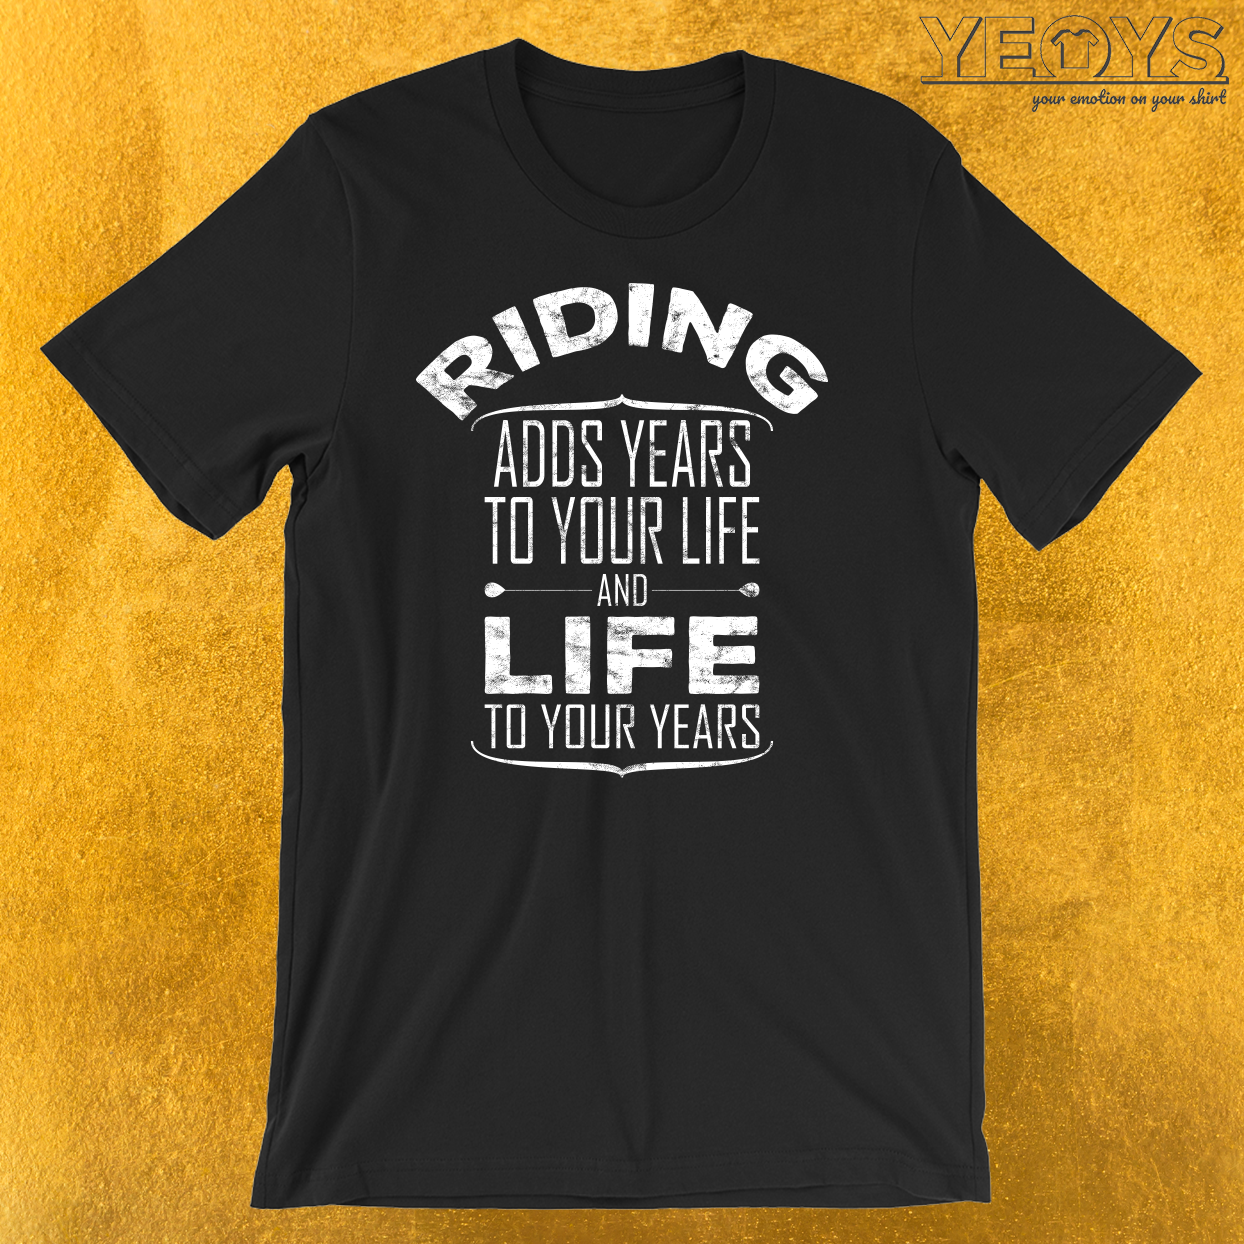 Riding Adds Life To Your Years T-Shirt